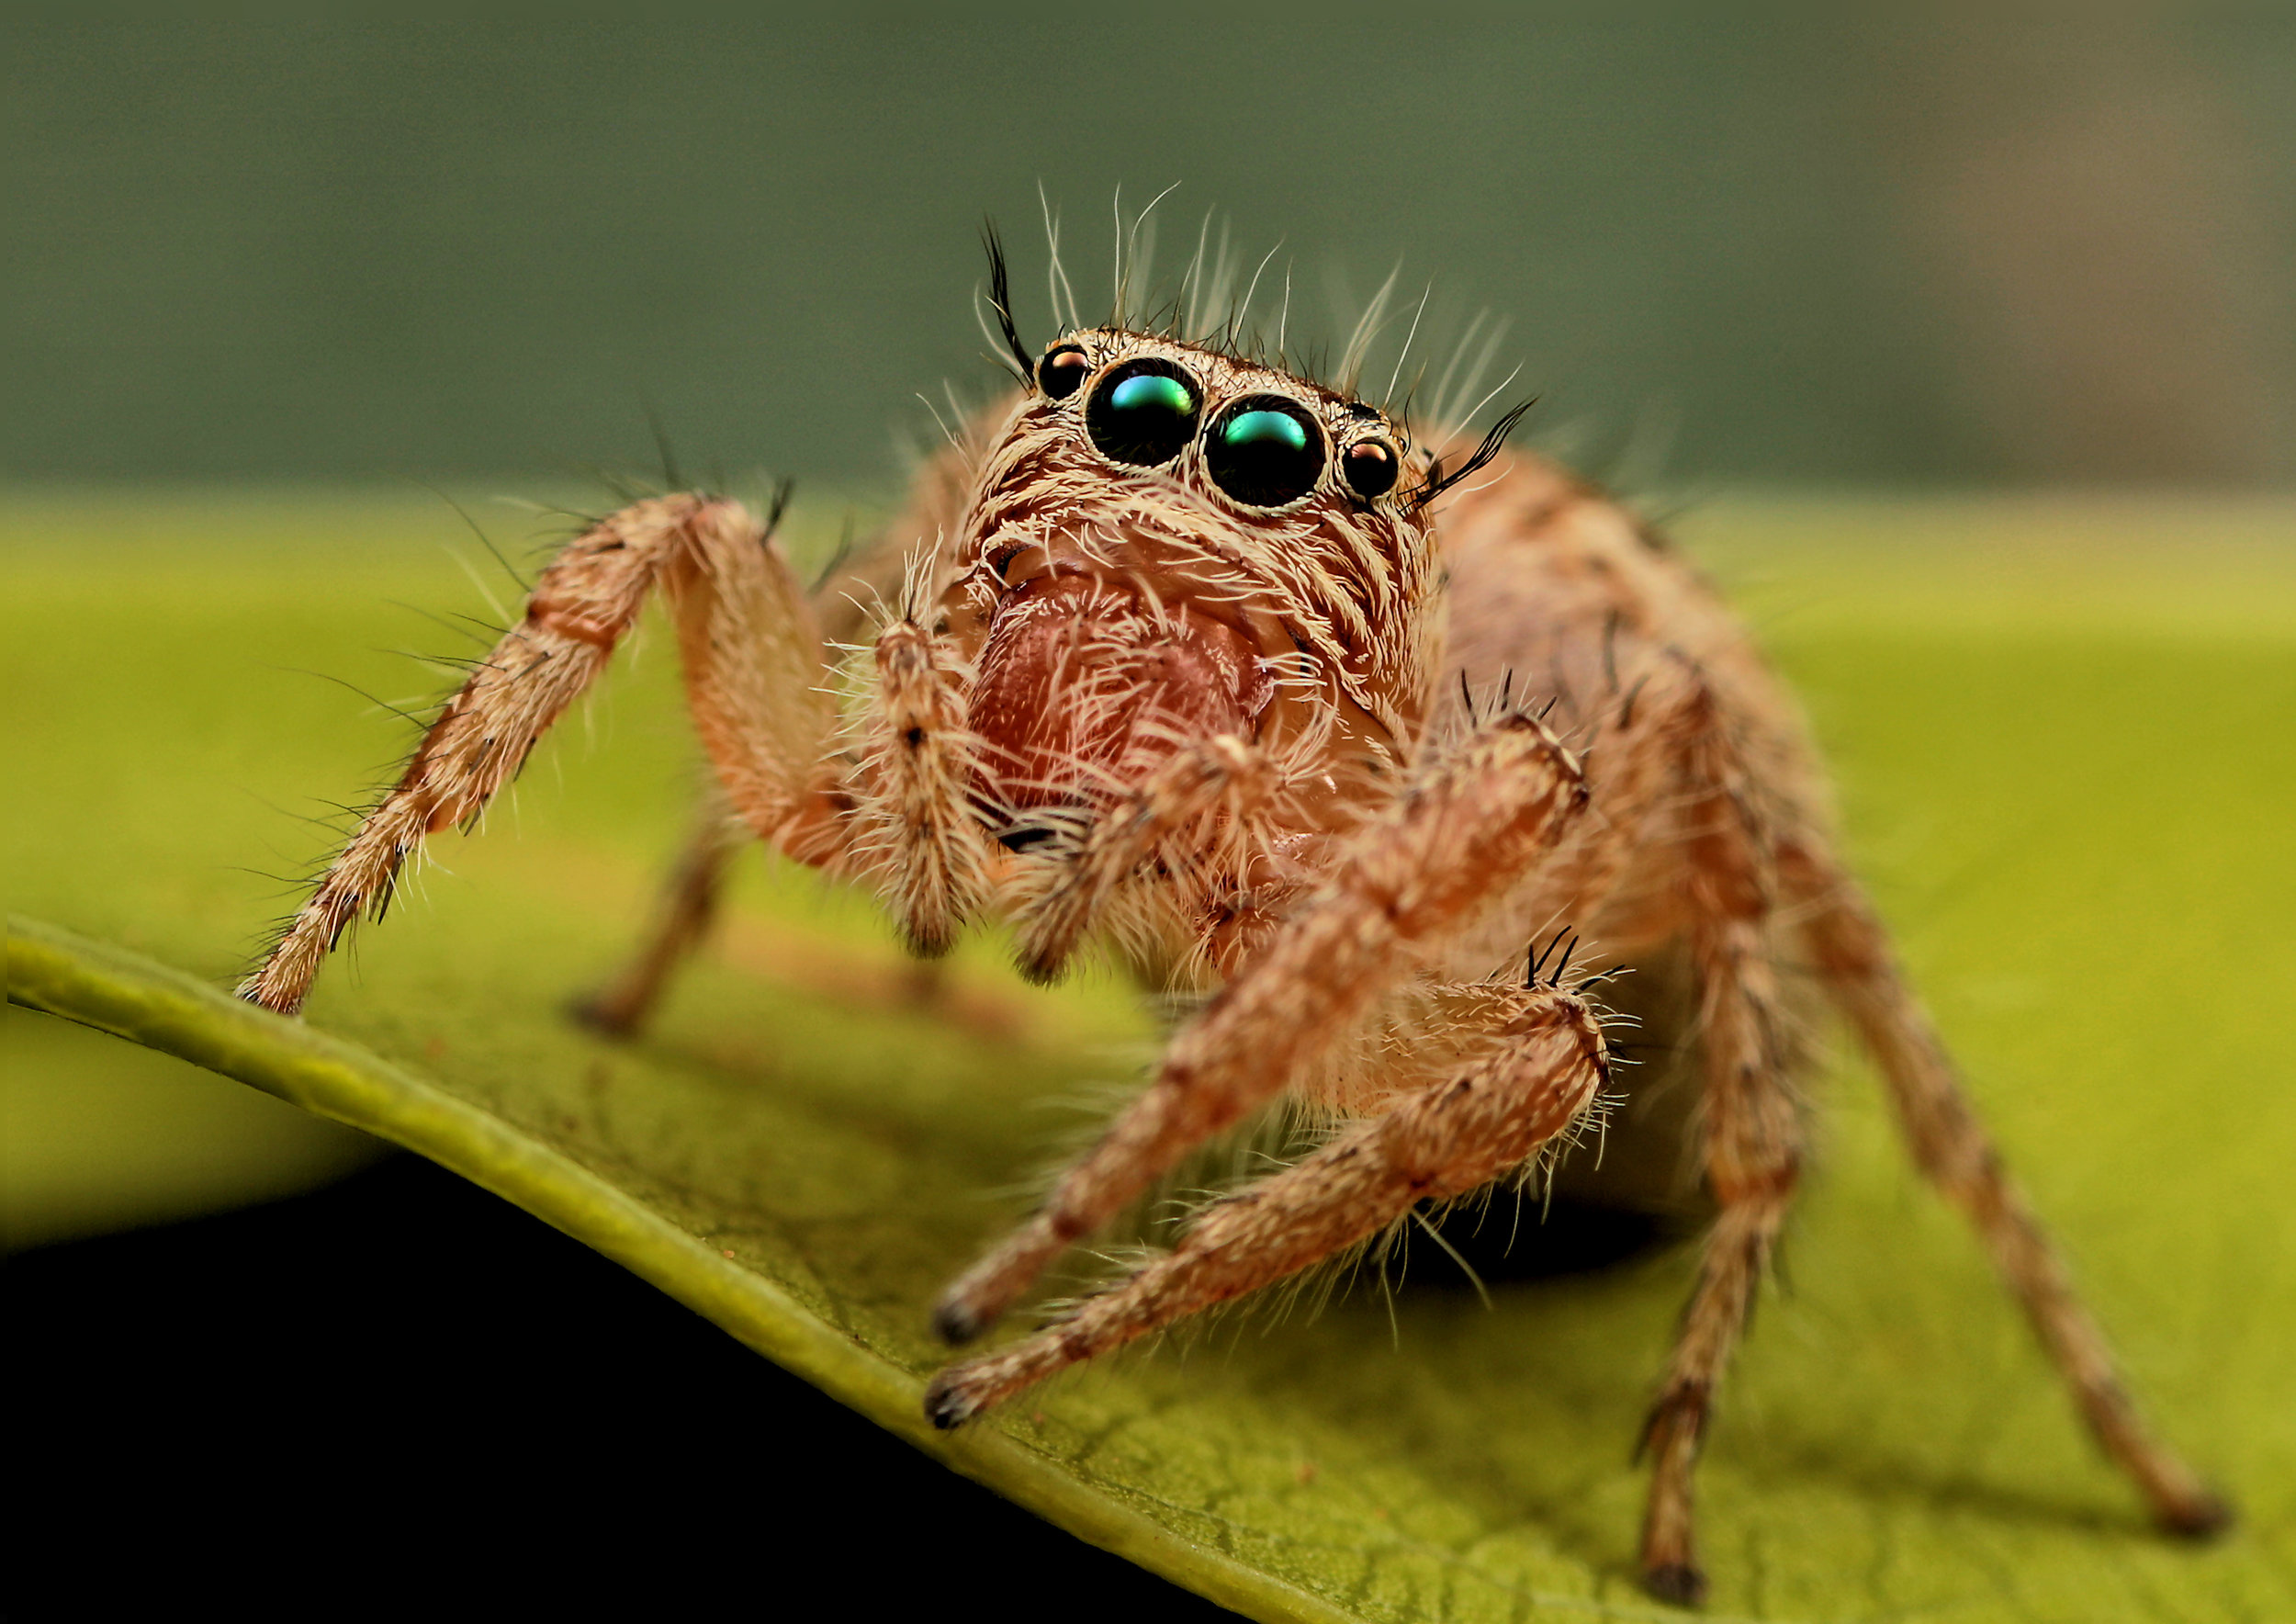 Why helllloooo there…I am just your friendly neighbourhood spider